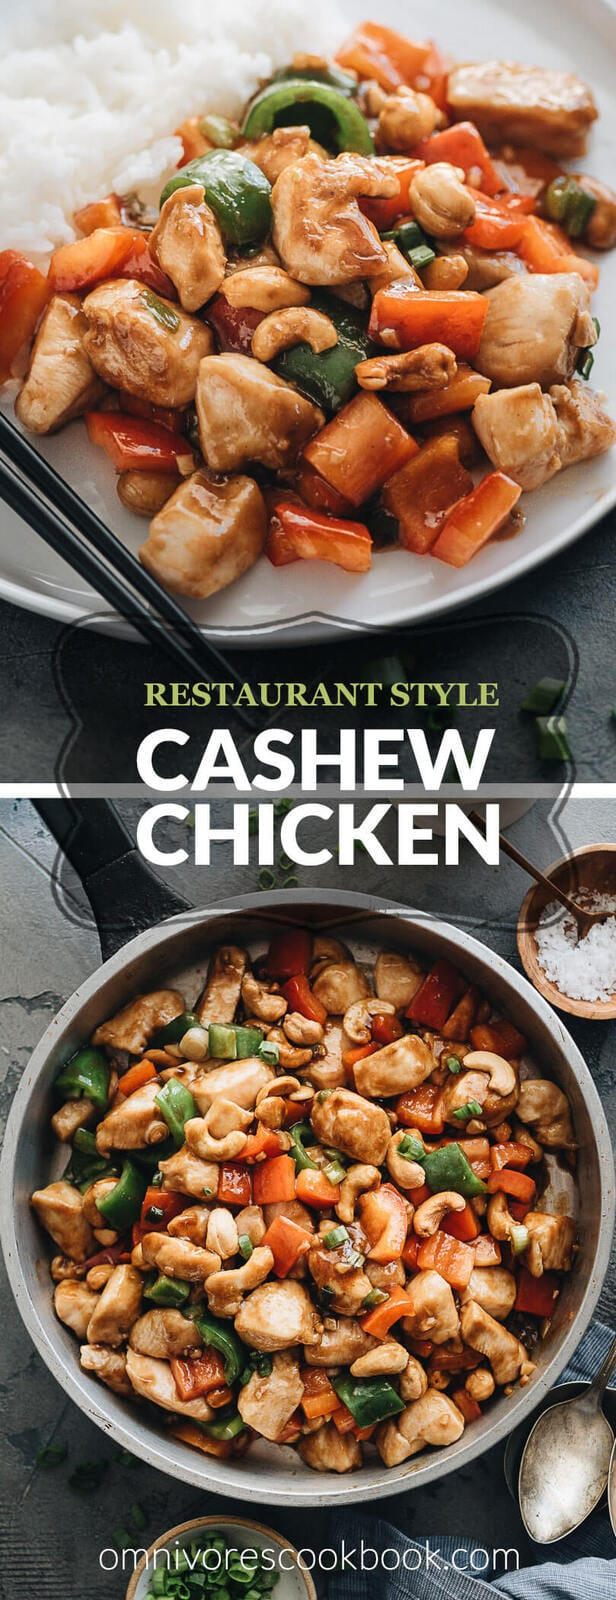 Cashew Chicken (腰果鸡丁) - Easy stir fry recipe that teaches you how to make restaurant-style cashew chicken with super juicy and tender meat, a rich, thick, gingery, garlicky sauce, crispy peppers and cashews. #chinese #healthy #glutenfree #authentic #takeout